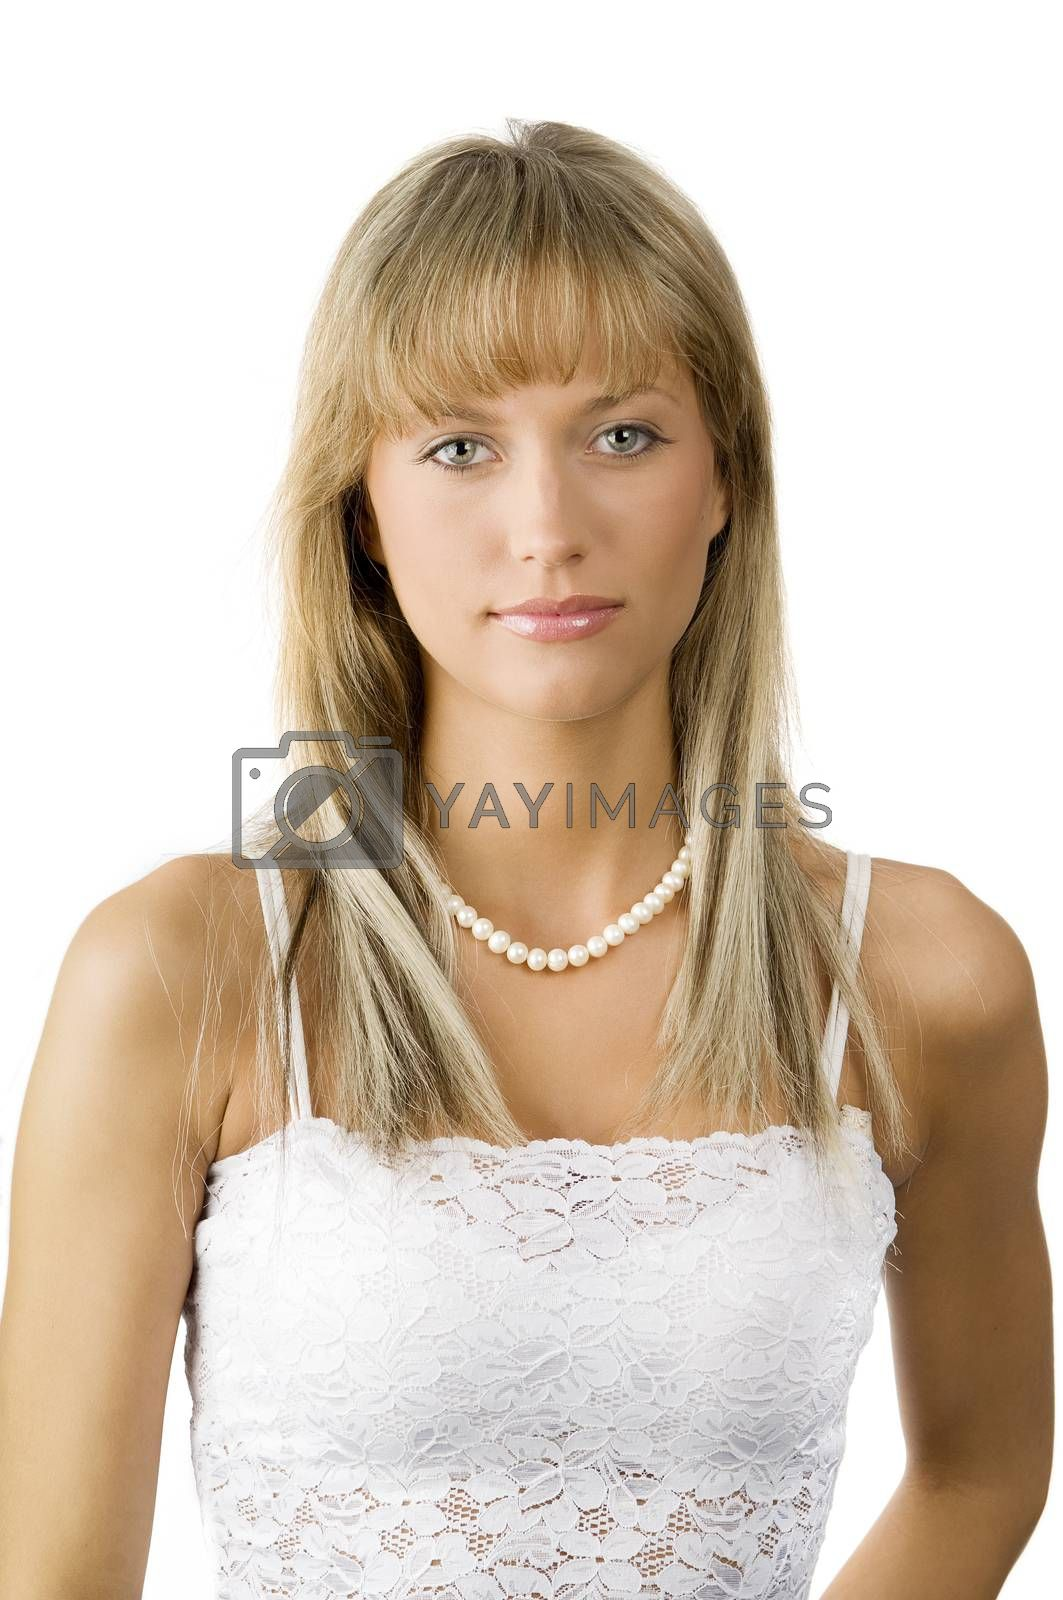 Royalty free image of portrait by fotoCD